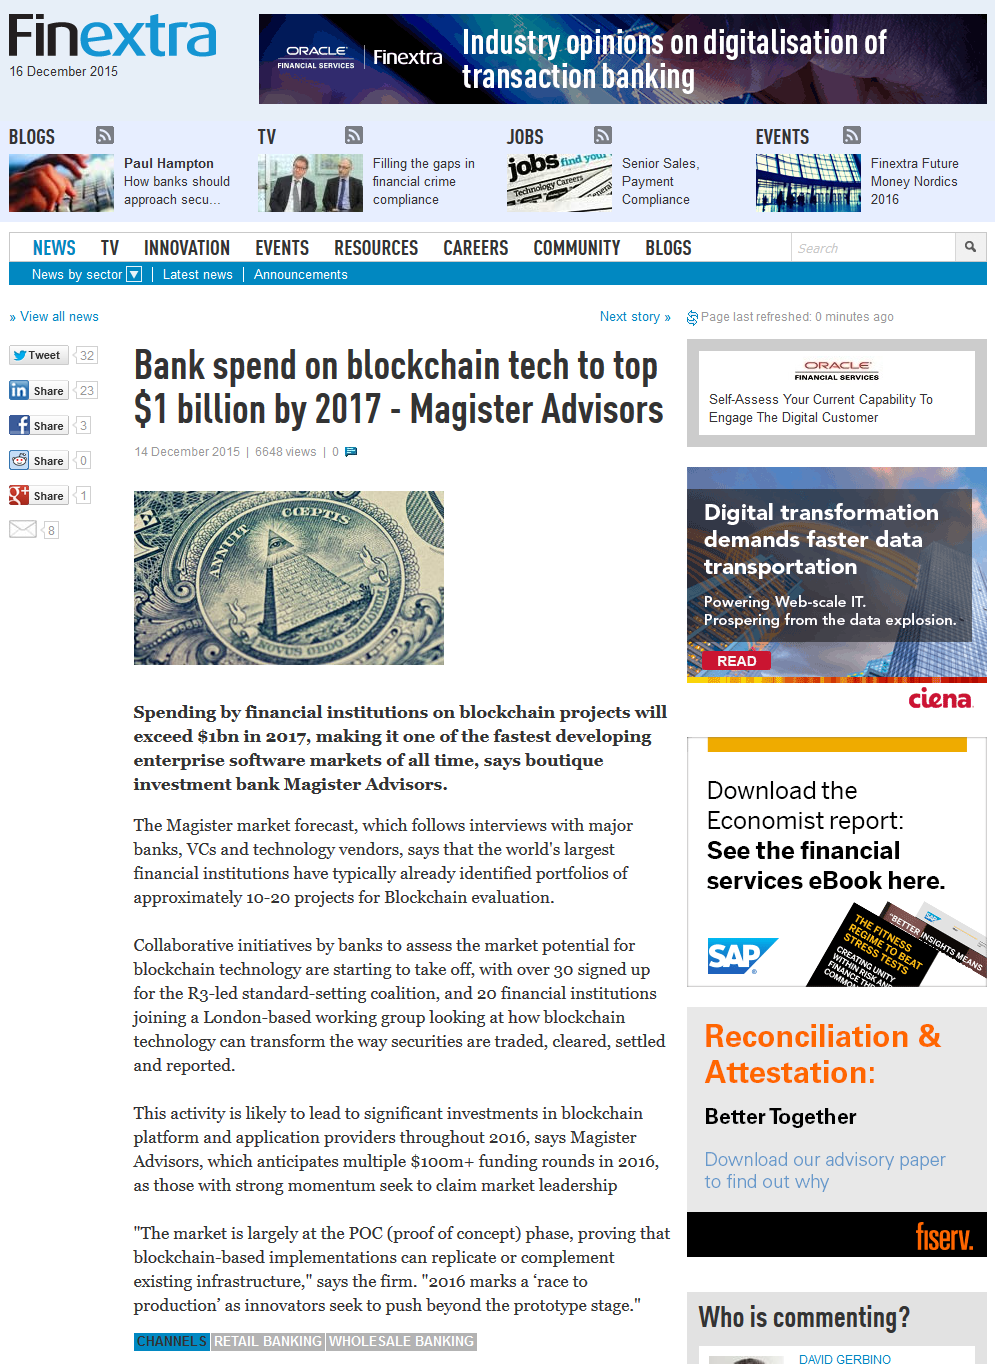 Bank spend on blockchain tech to top $1 billion by 2017 - Magister Advisors